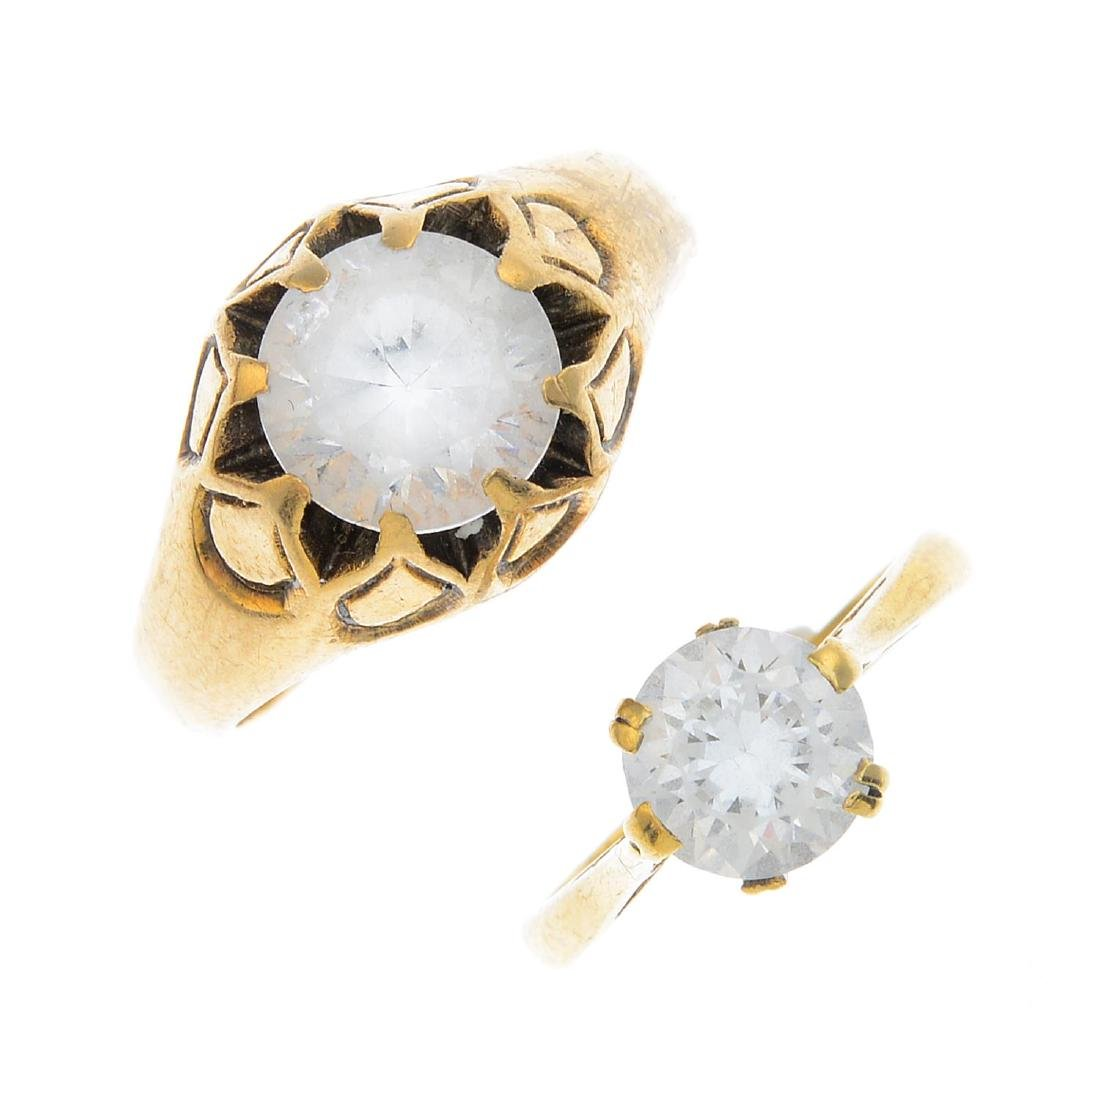 Two 9ct gold cubic zirconia rings. To include a